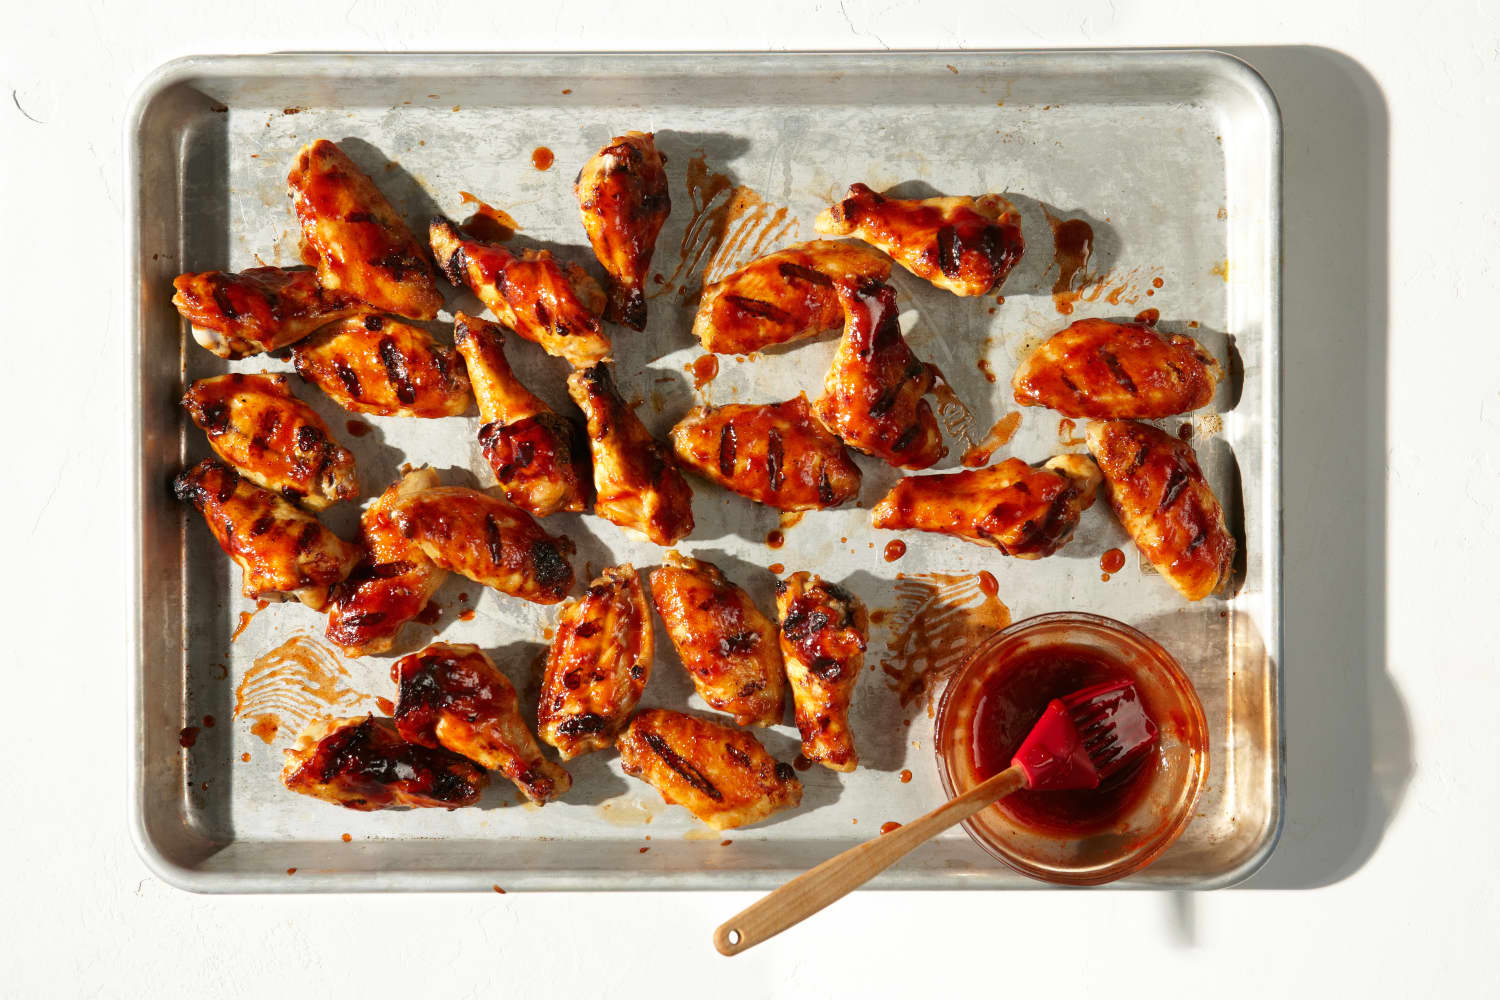 Recipe: Grilled BBQ Chicken Wings